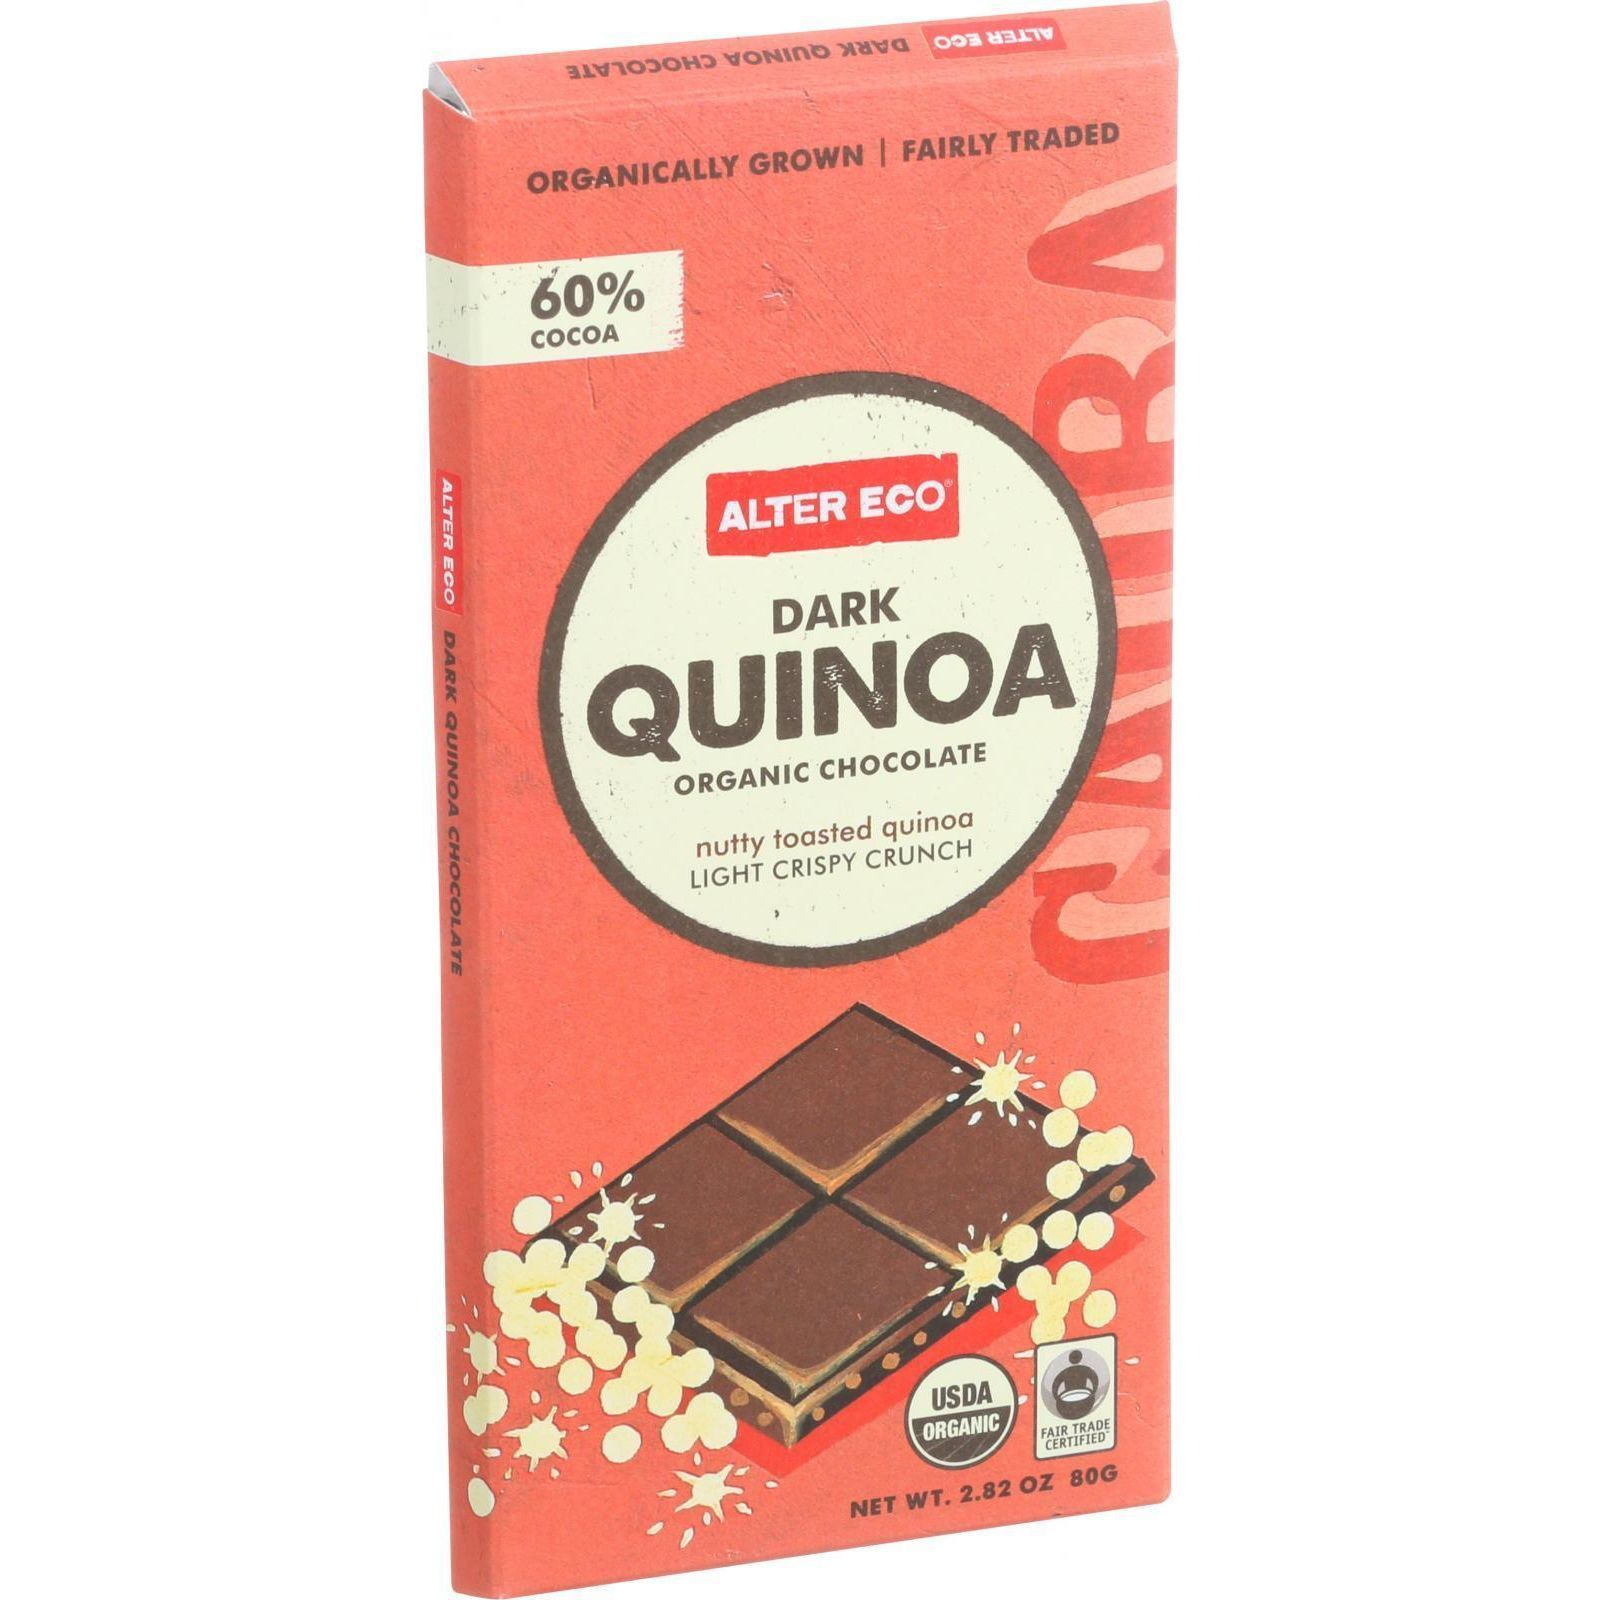 Alter Eco Americas Organic Chocolate Bar - Dark Quinoa - 2.82 oz Bars - Case of